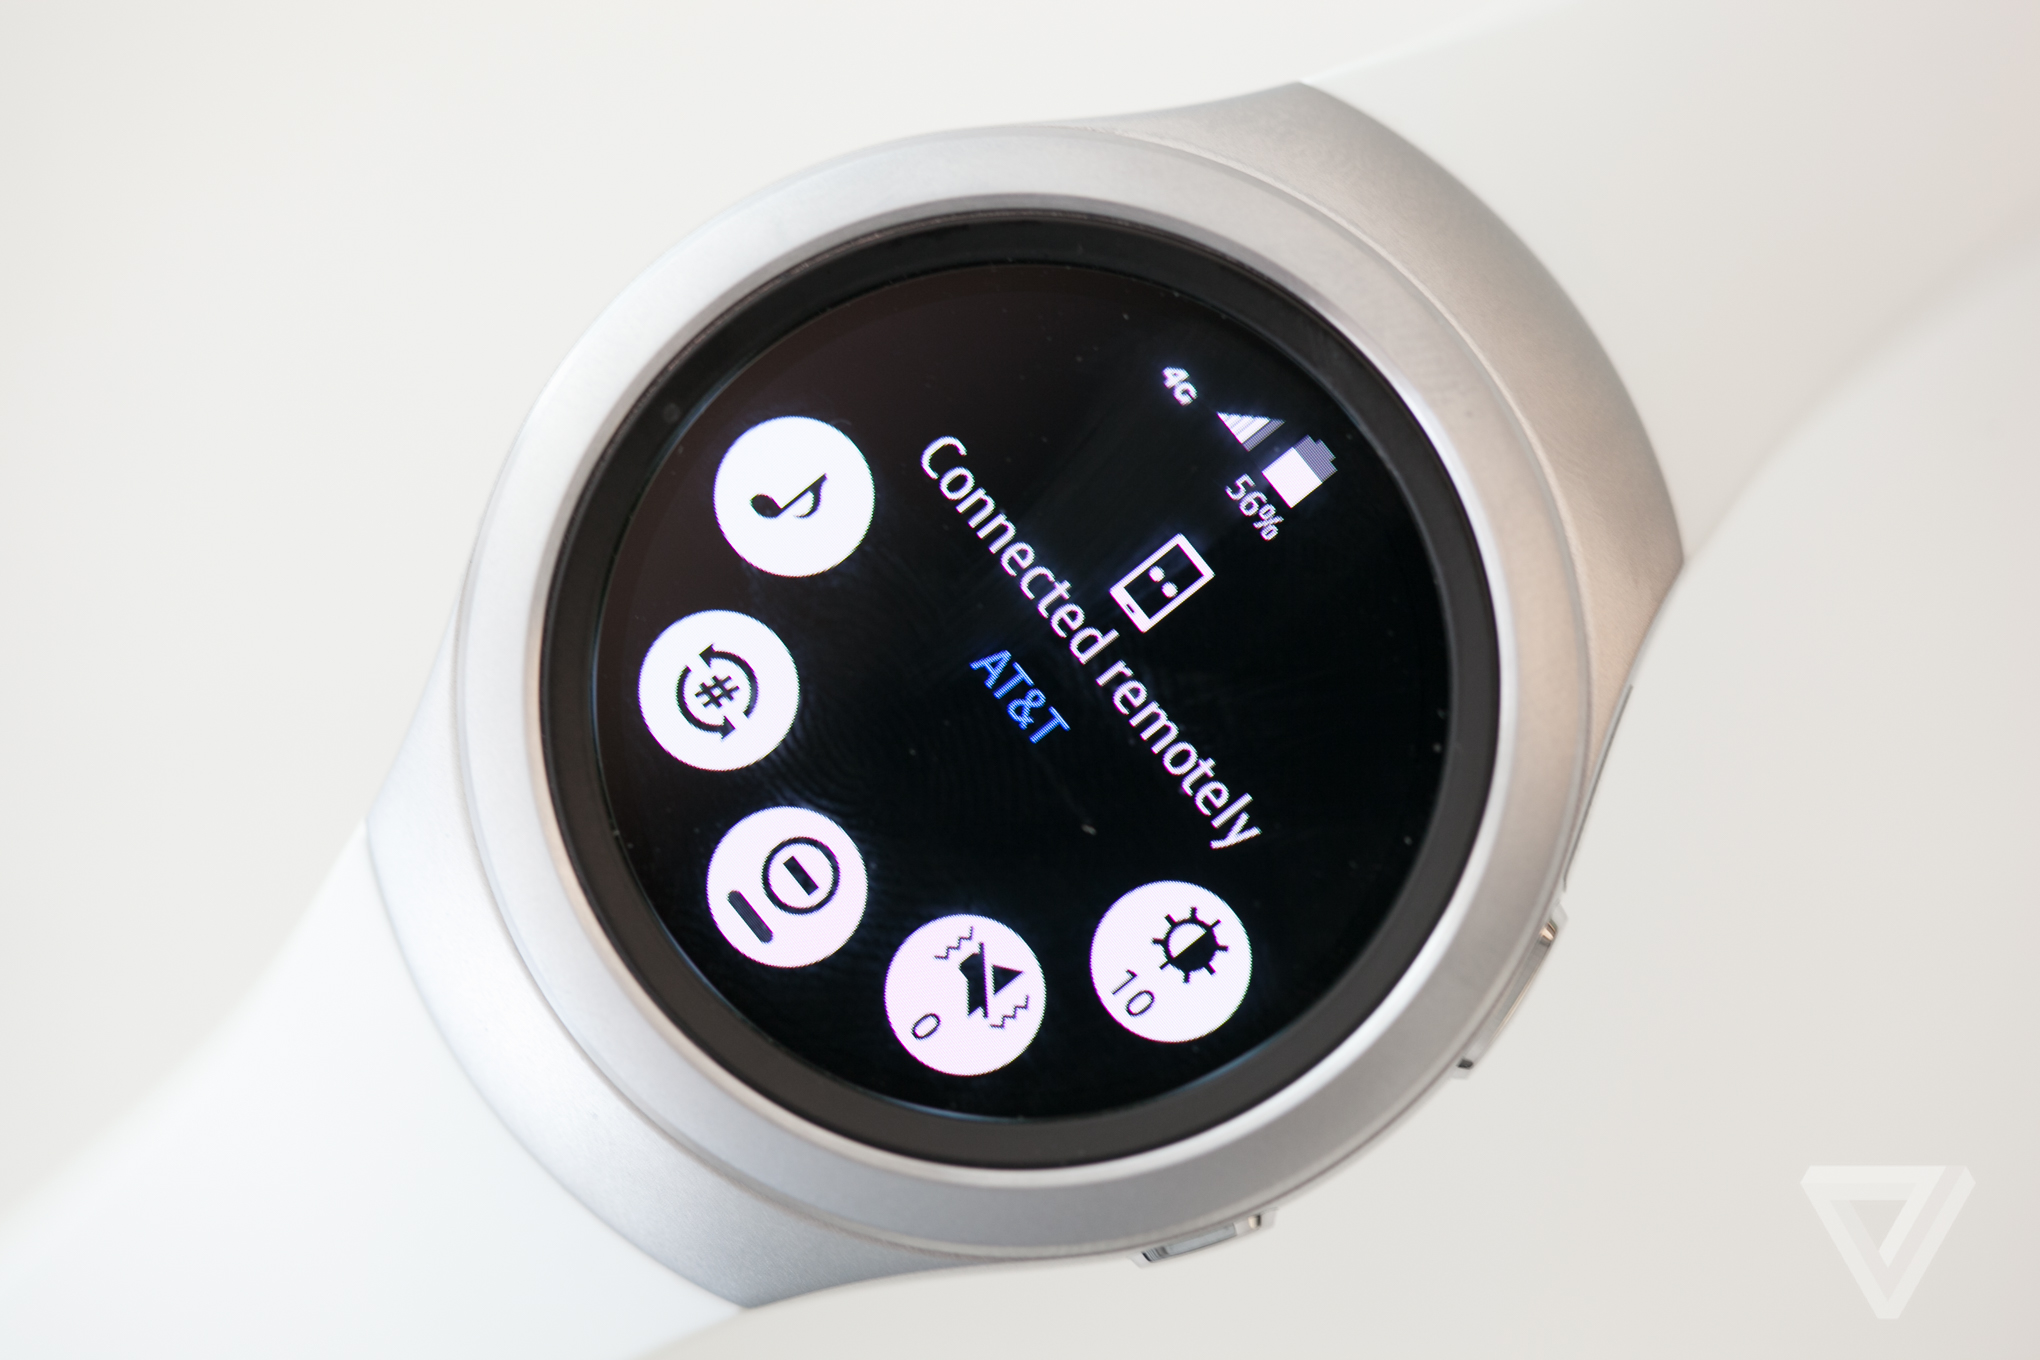 Samsung's Gear S2 3G is a look at our untethered future ...